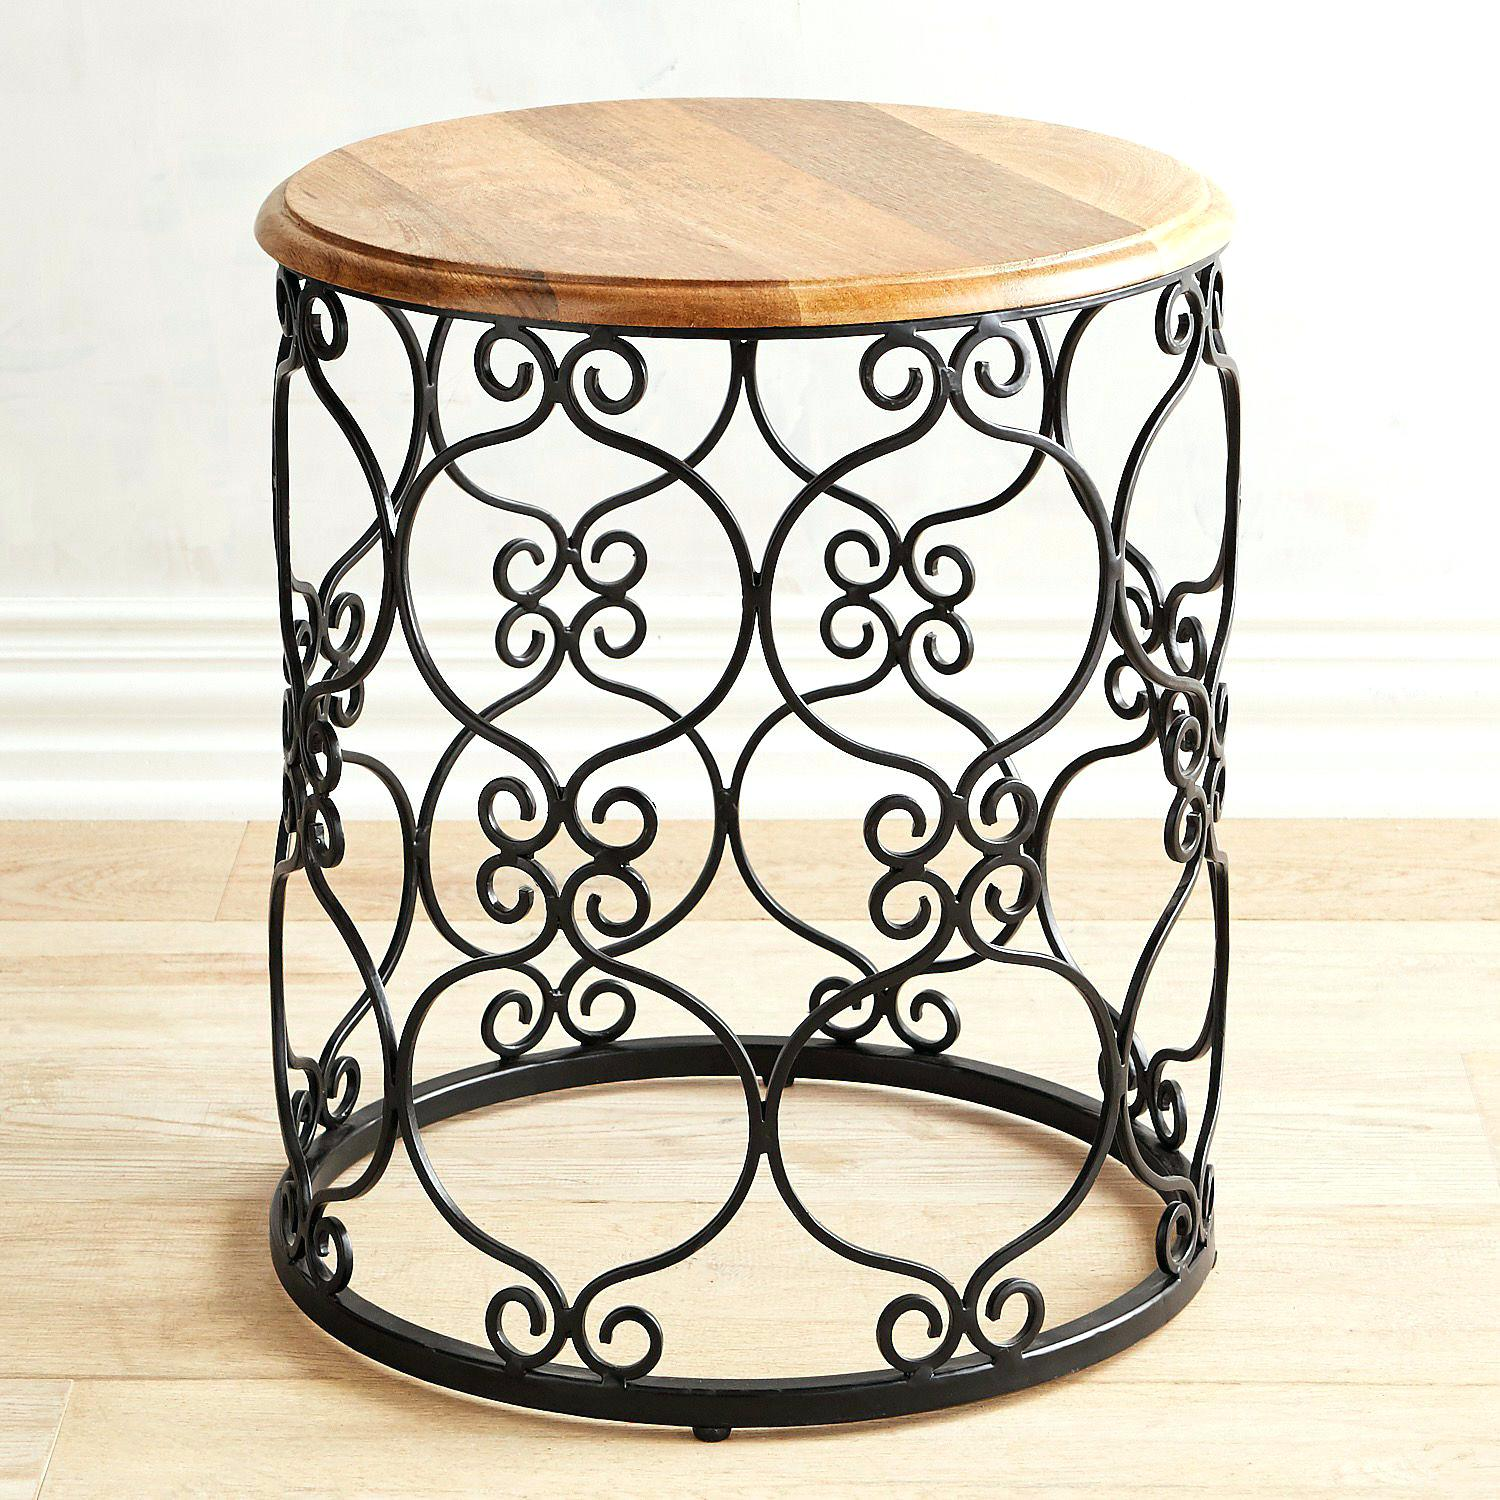 fretwork accent table grey topaz coffee tables target magnificent small round best ideas threshold yellow teal order legs garden furniture chairs bar height circle glass patio